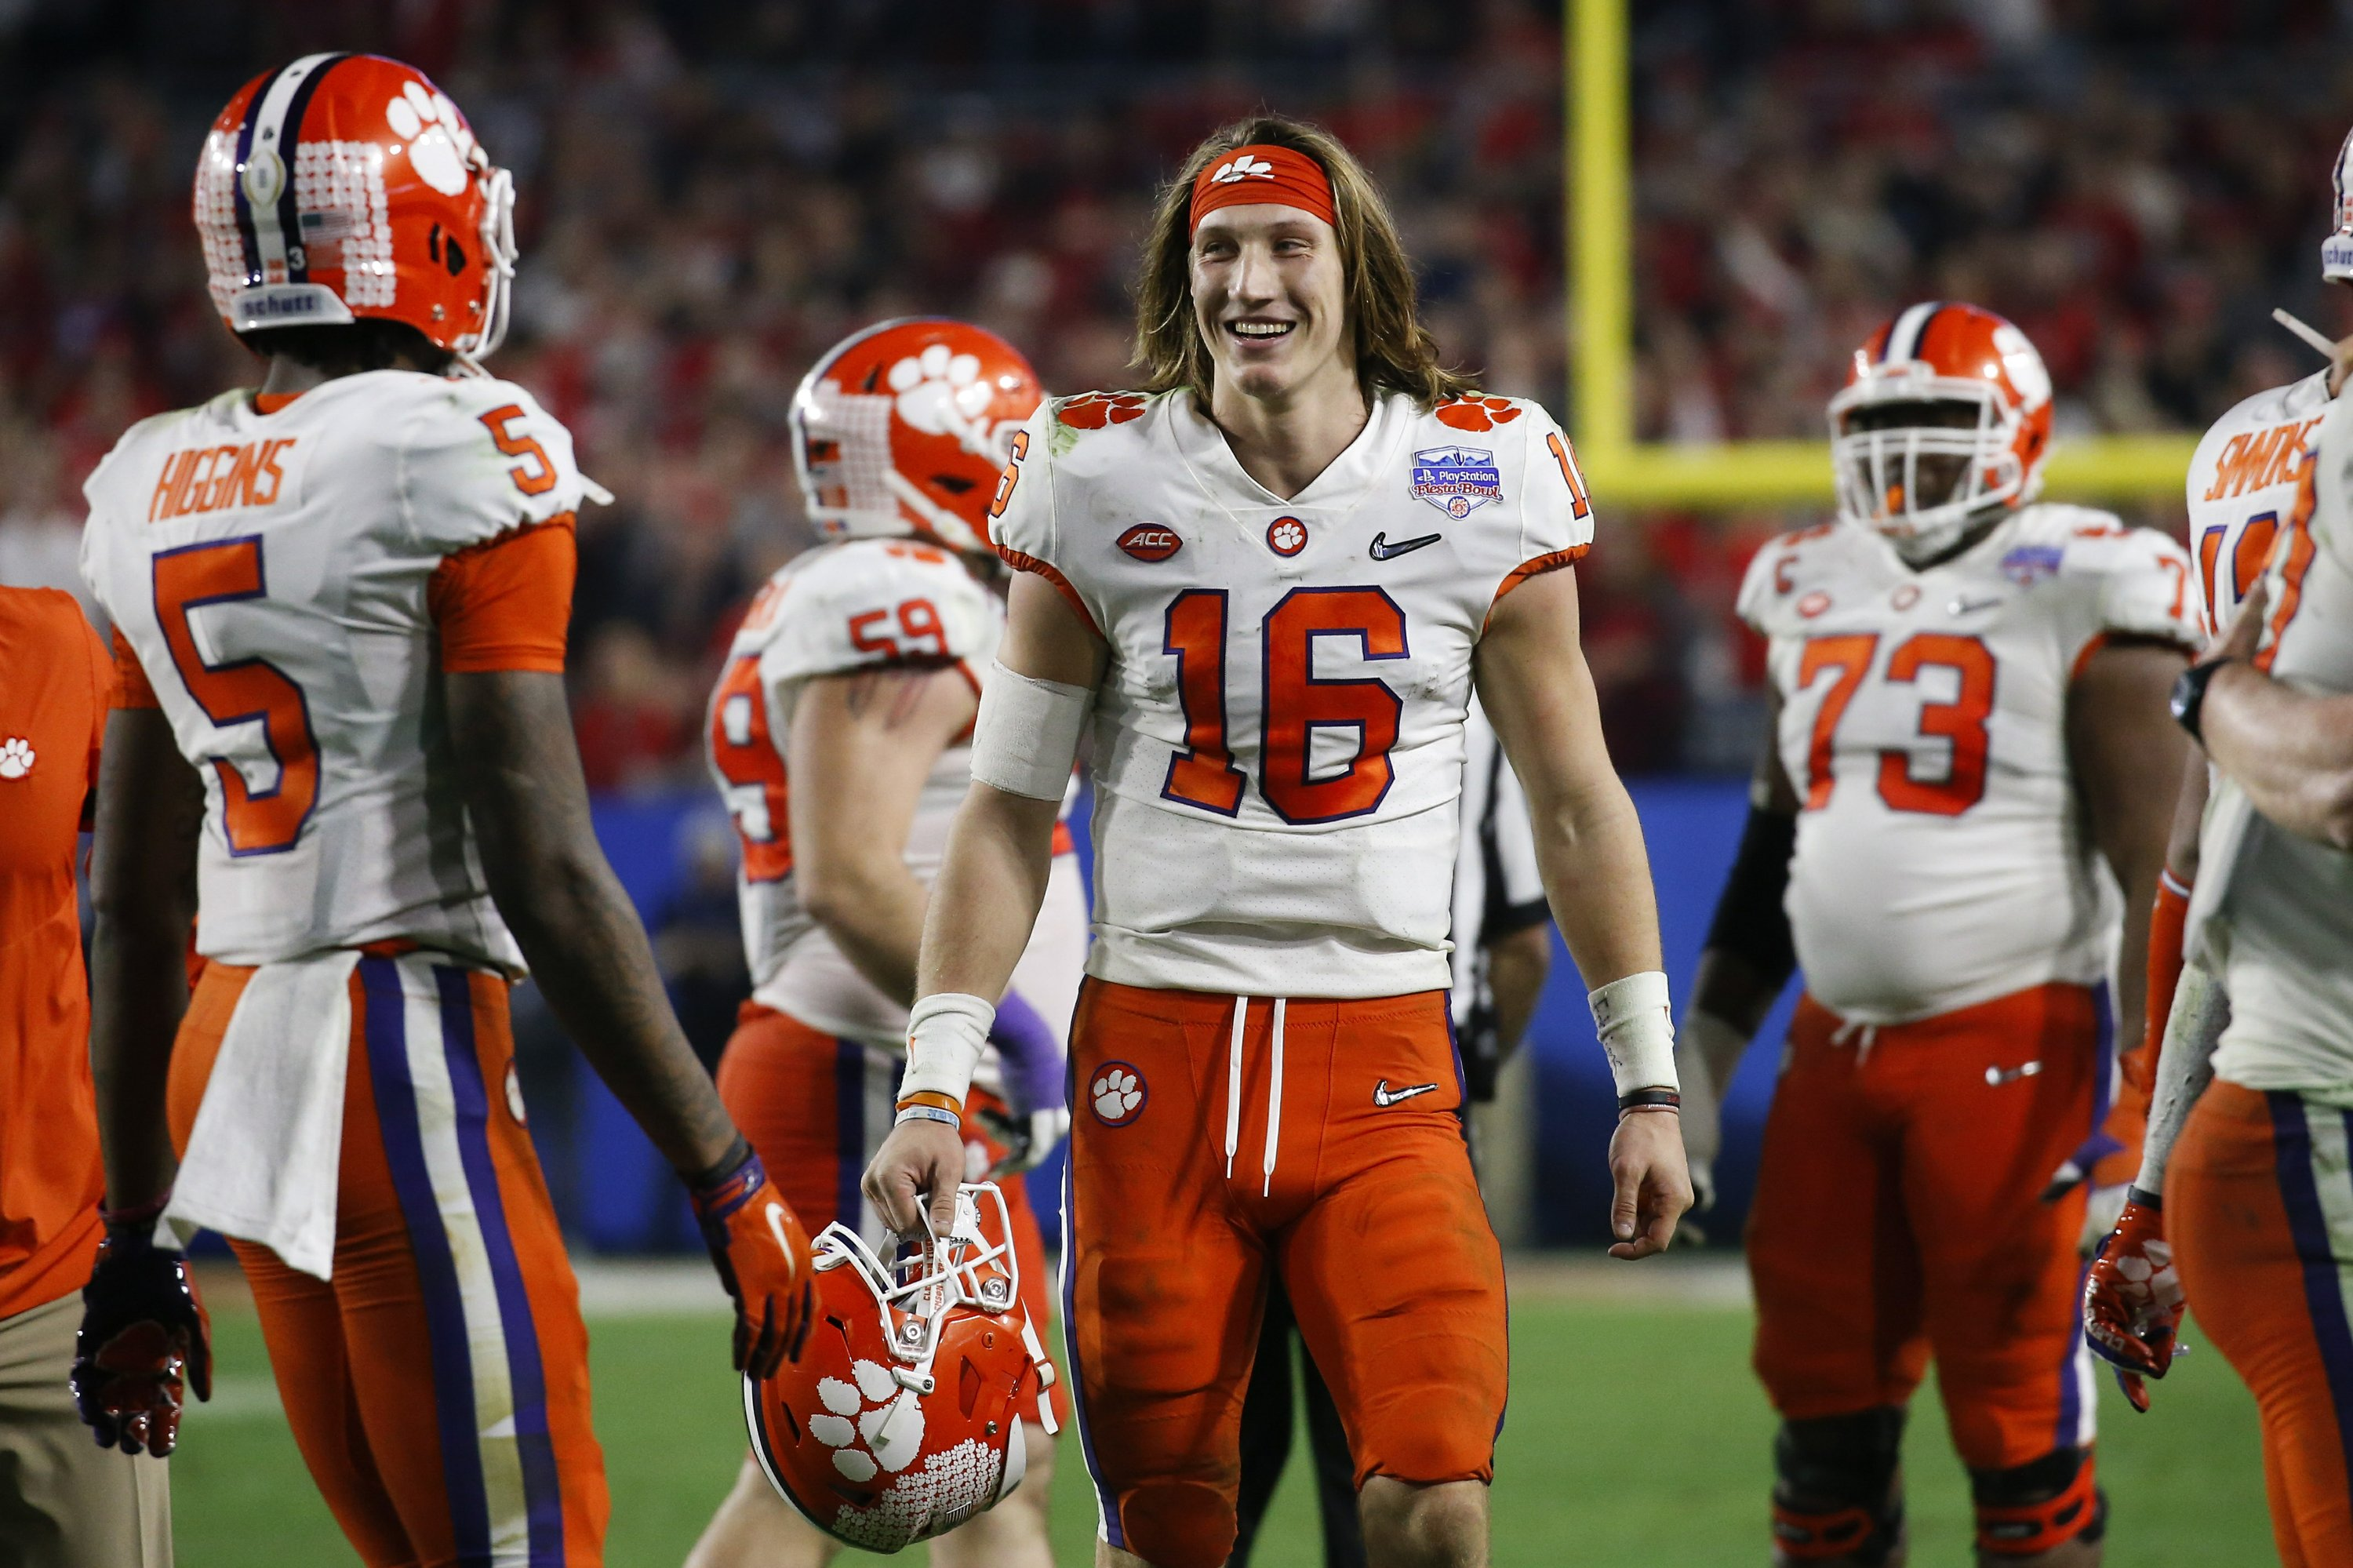 LSU, Clemson arrive in New Orleans for CFP championship game